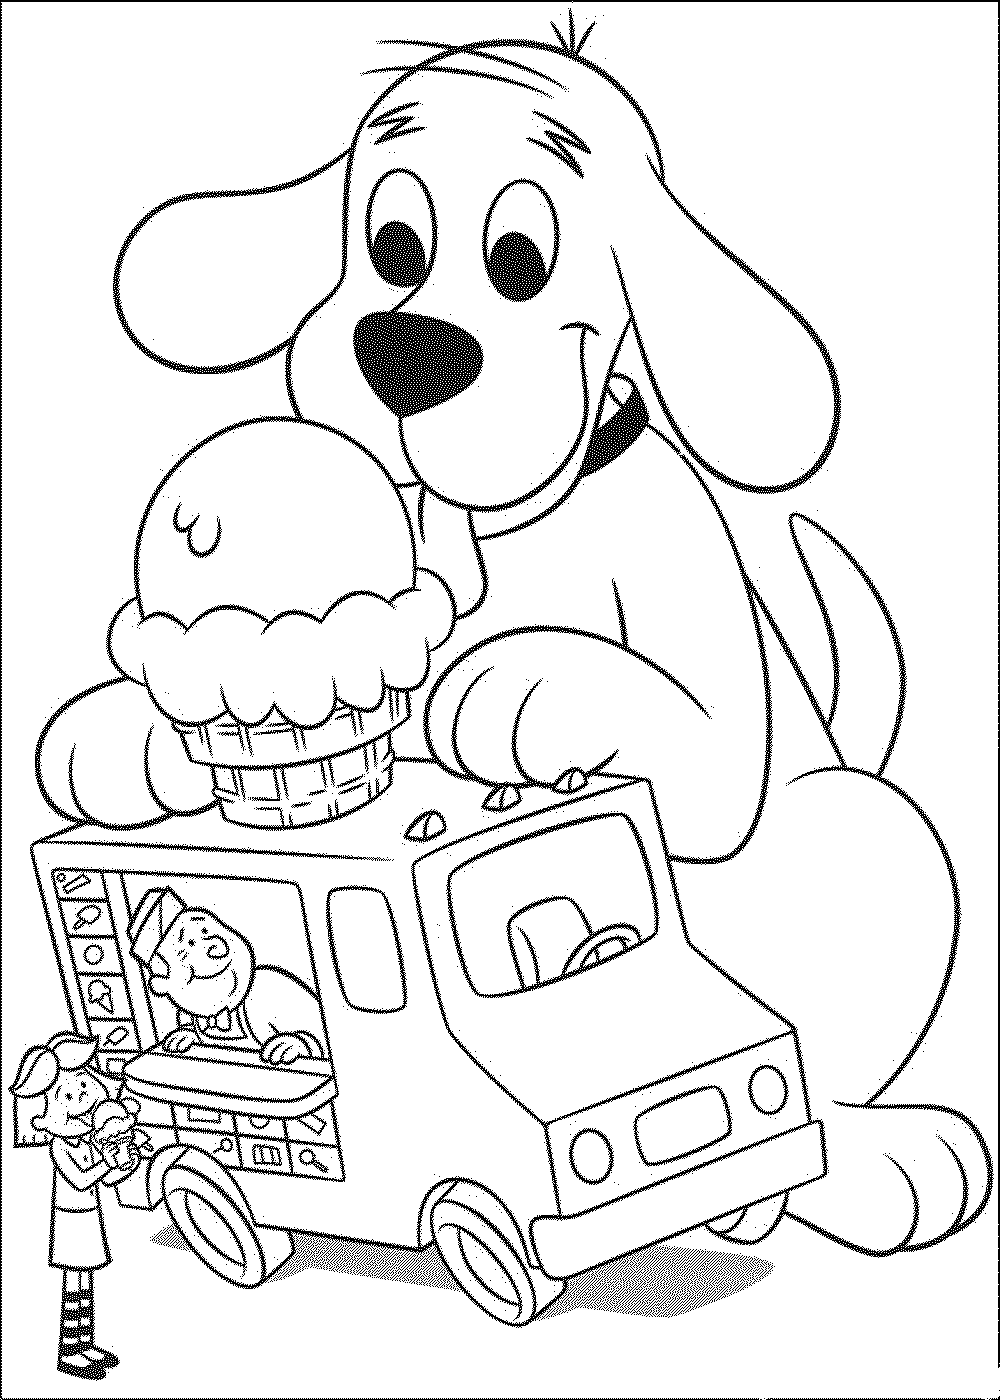 dog coloring in employ dog coloring pages for your childrens creative time in dog coloring